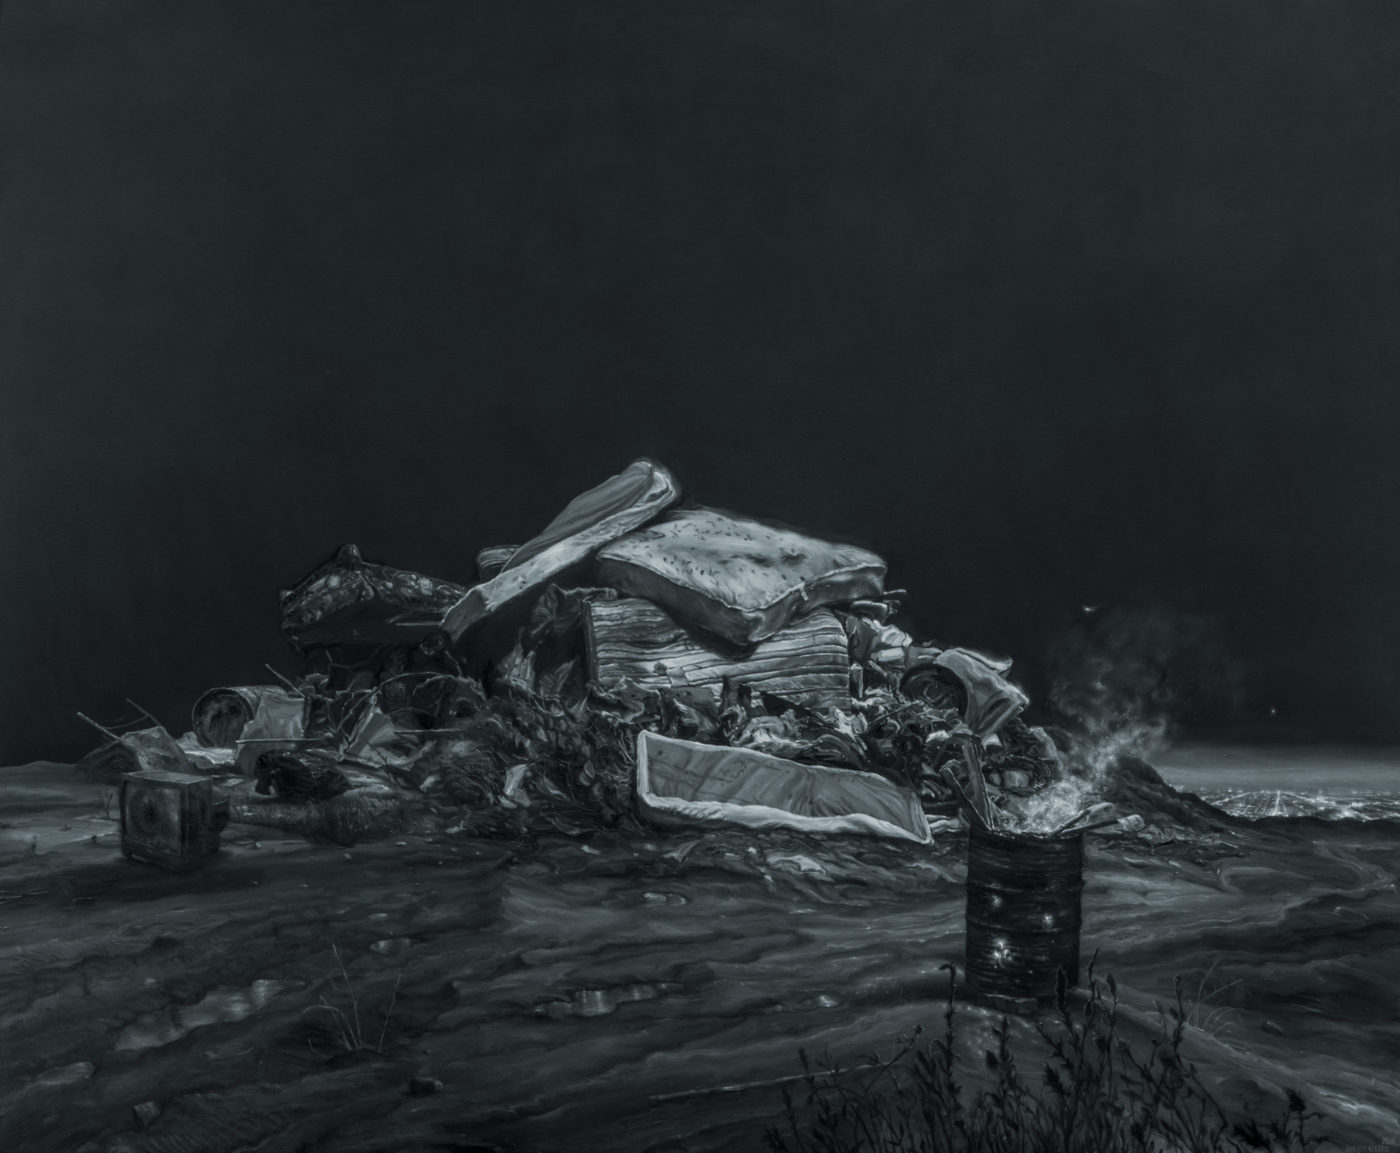 """Close up photo of """"The City II"""" by Vincent Valdez, the detail shows a pile of mattresses, broken chairs, broken television and other garbage next to a metal barrel containing pieces of wood that are on fire"""